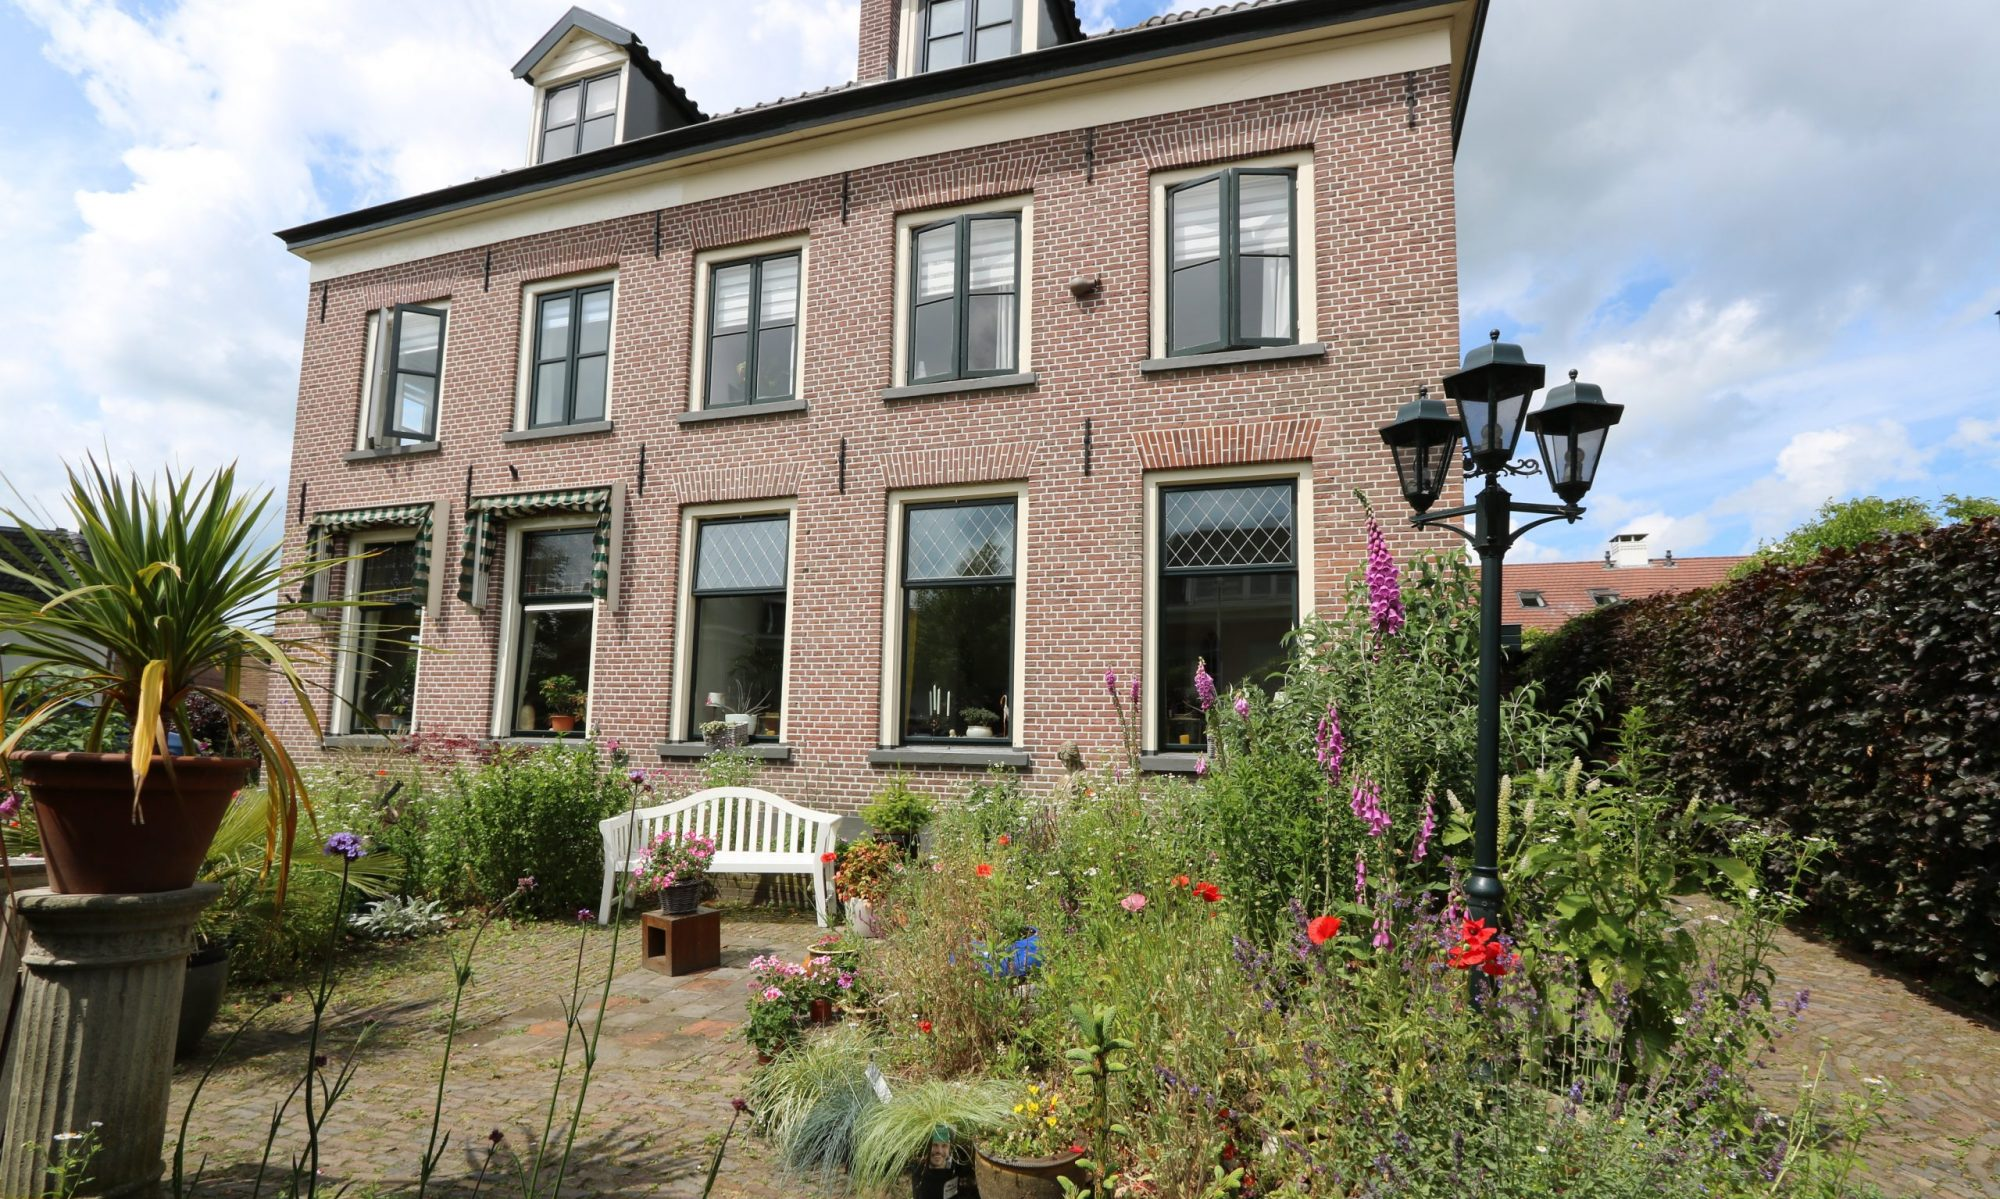 B&B Thirion Vorden